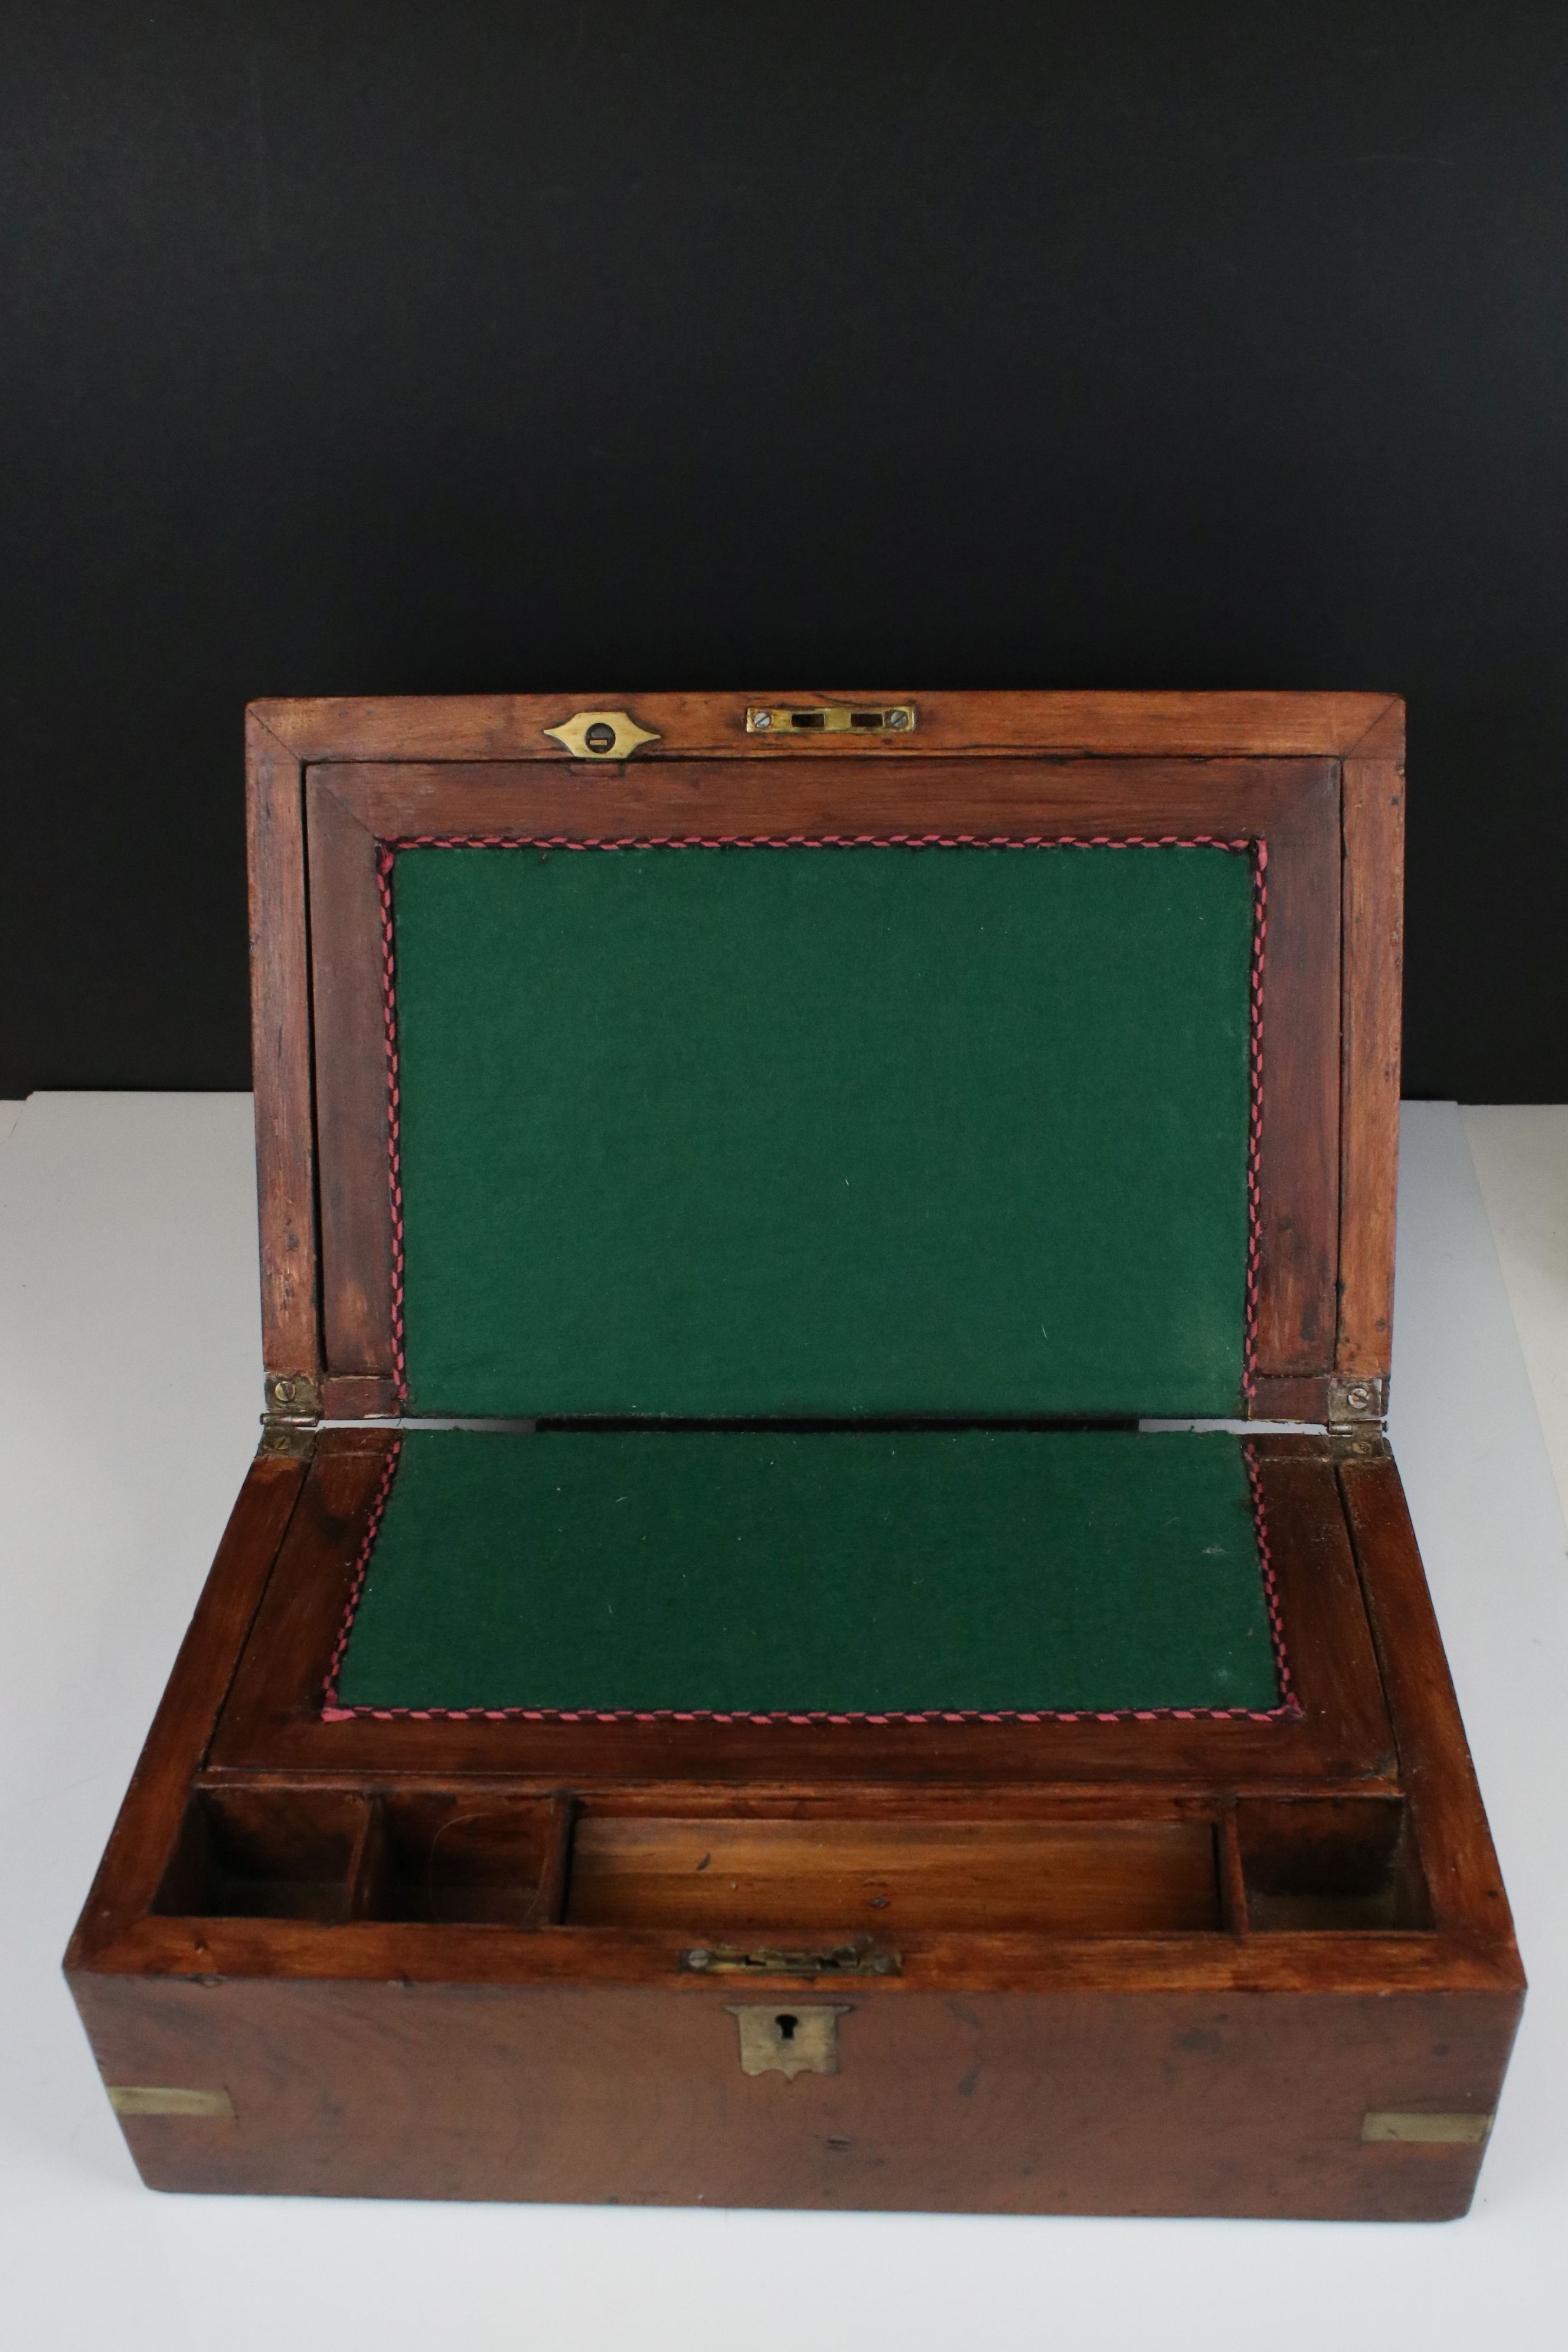 19th century Mahogany and Brass Mounted Writing Slope Box, 35cms wide - Image 2 of 4